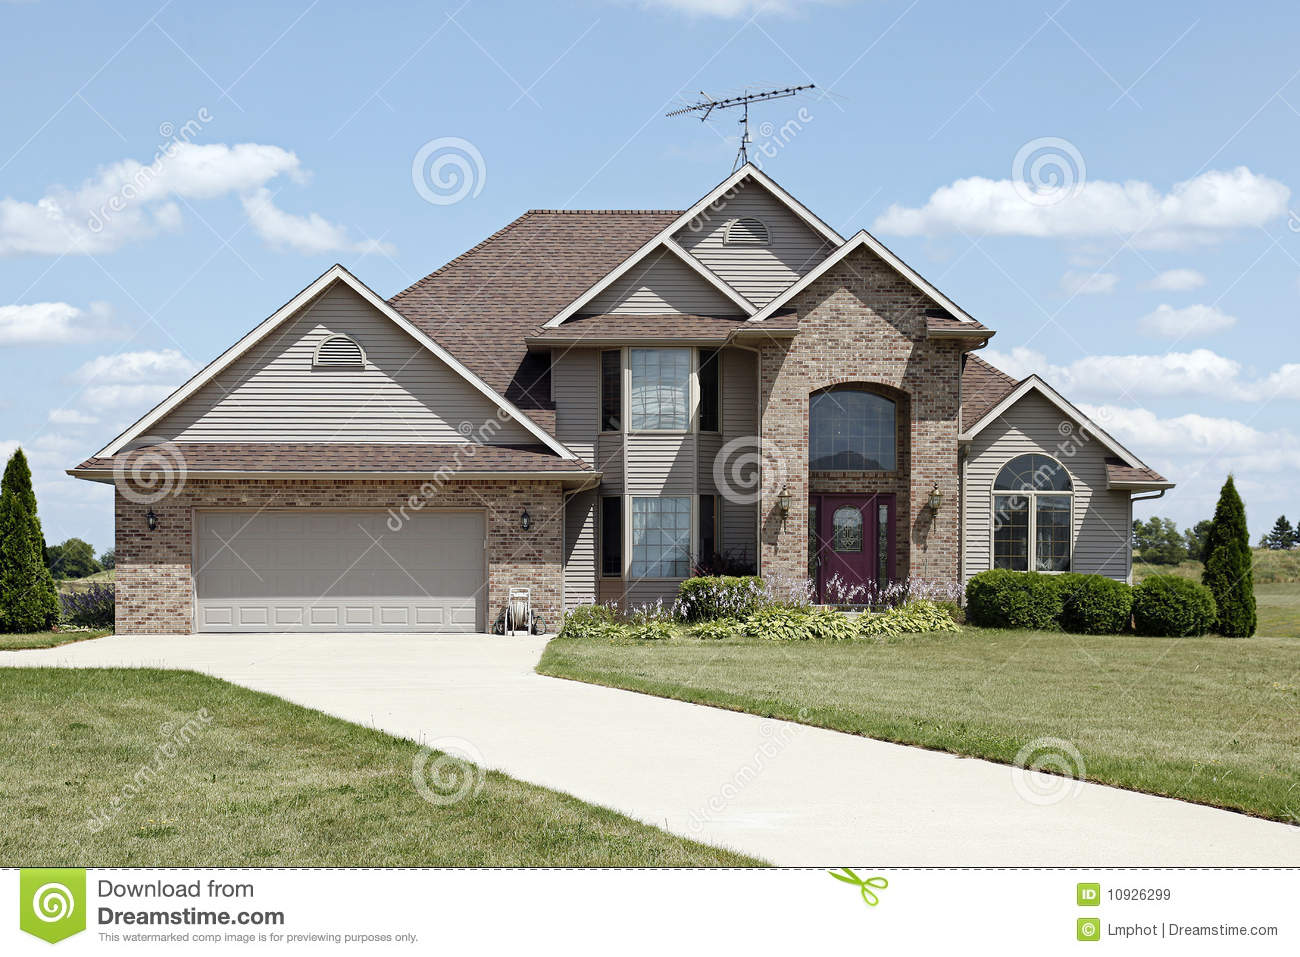 Brick Home With Arched Entryway Royalty Free Stock Images